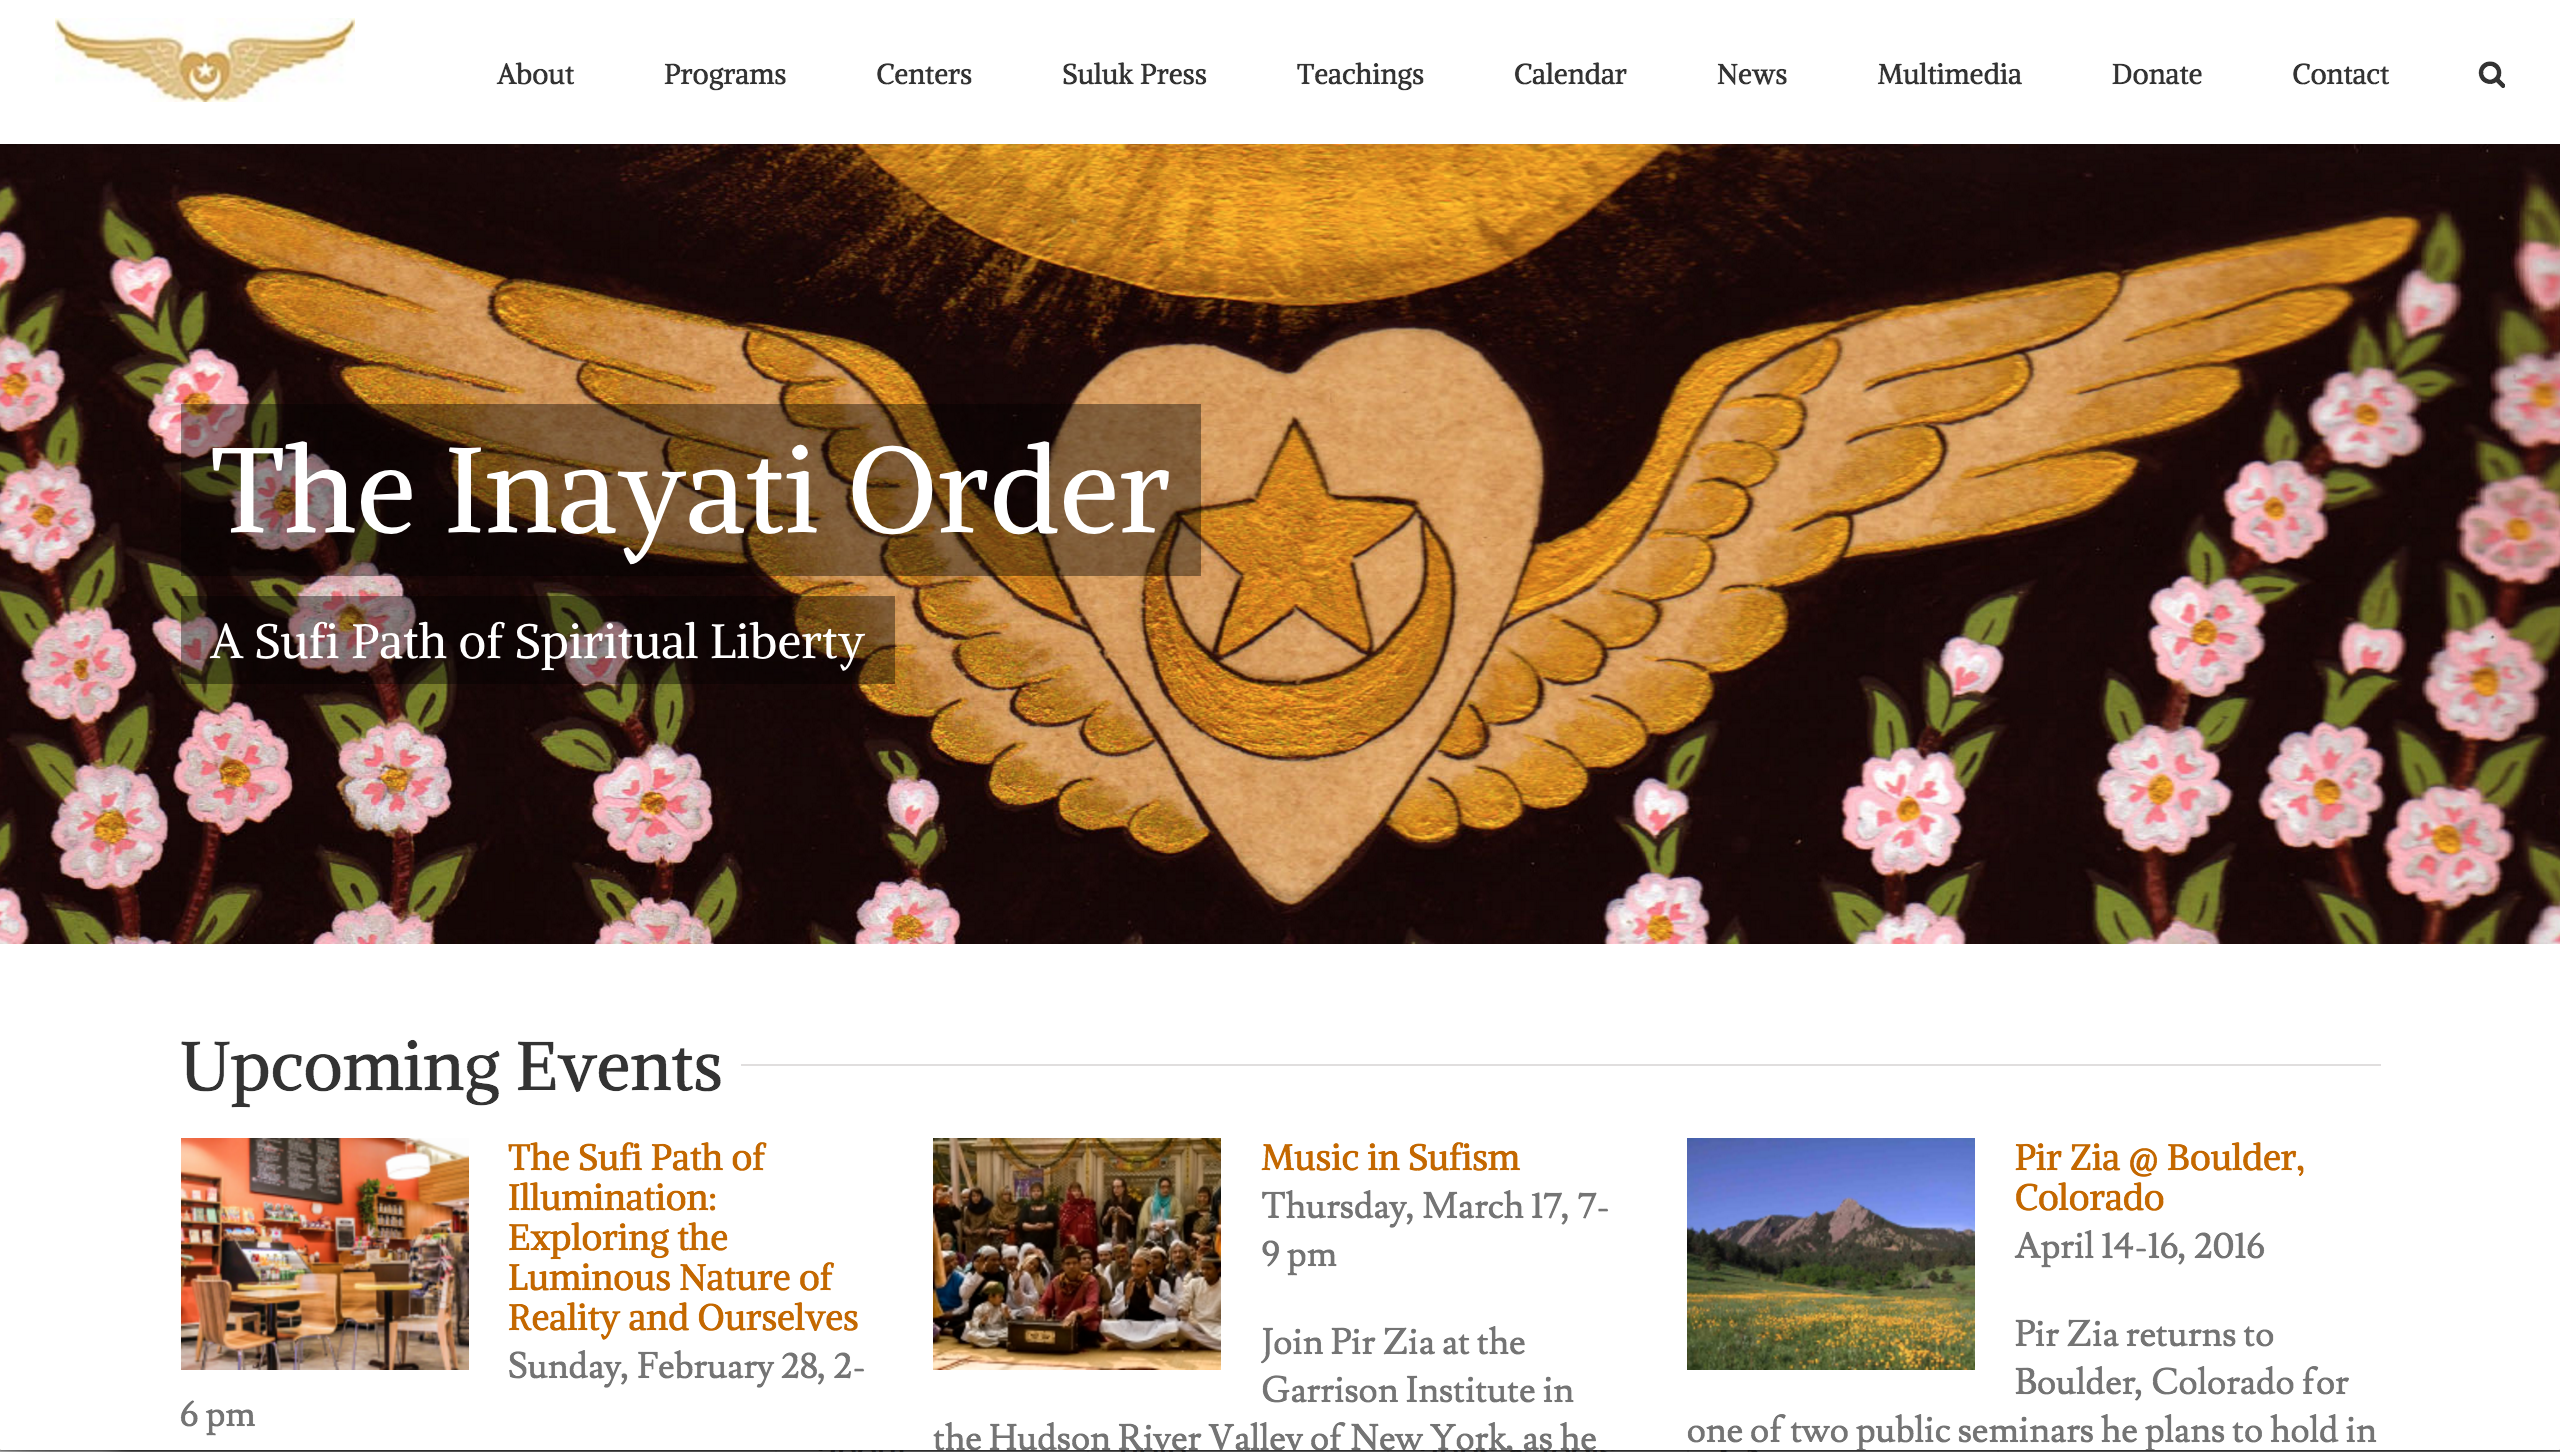 The Inayati Order